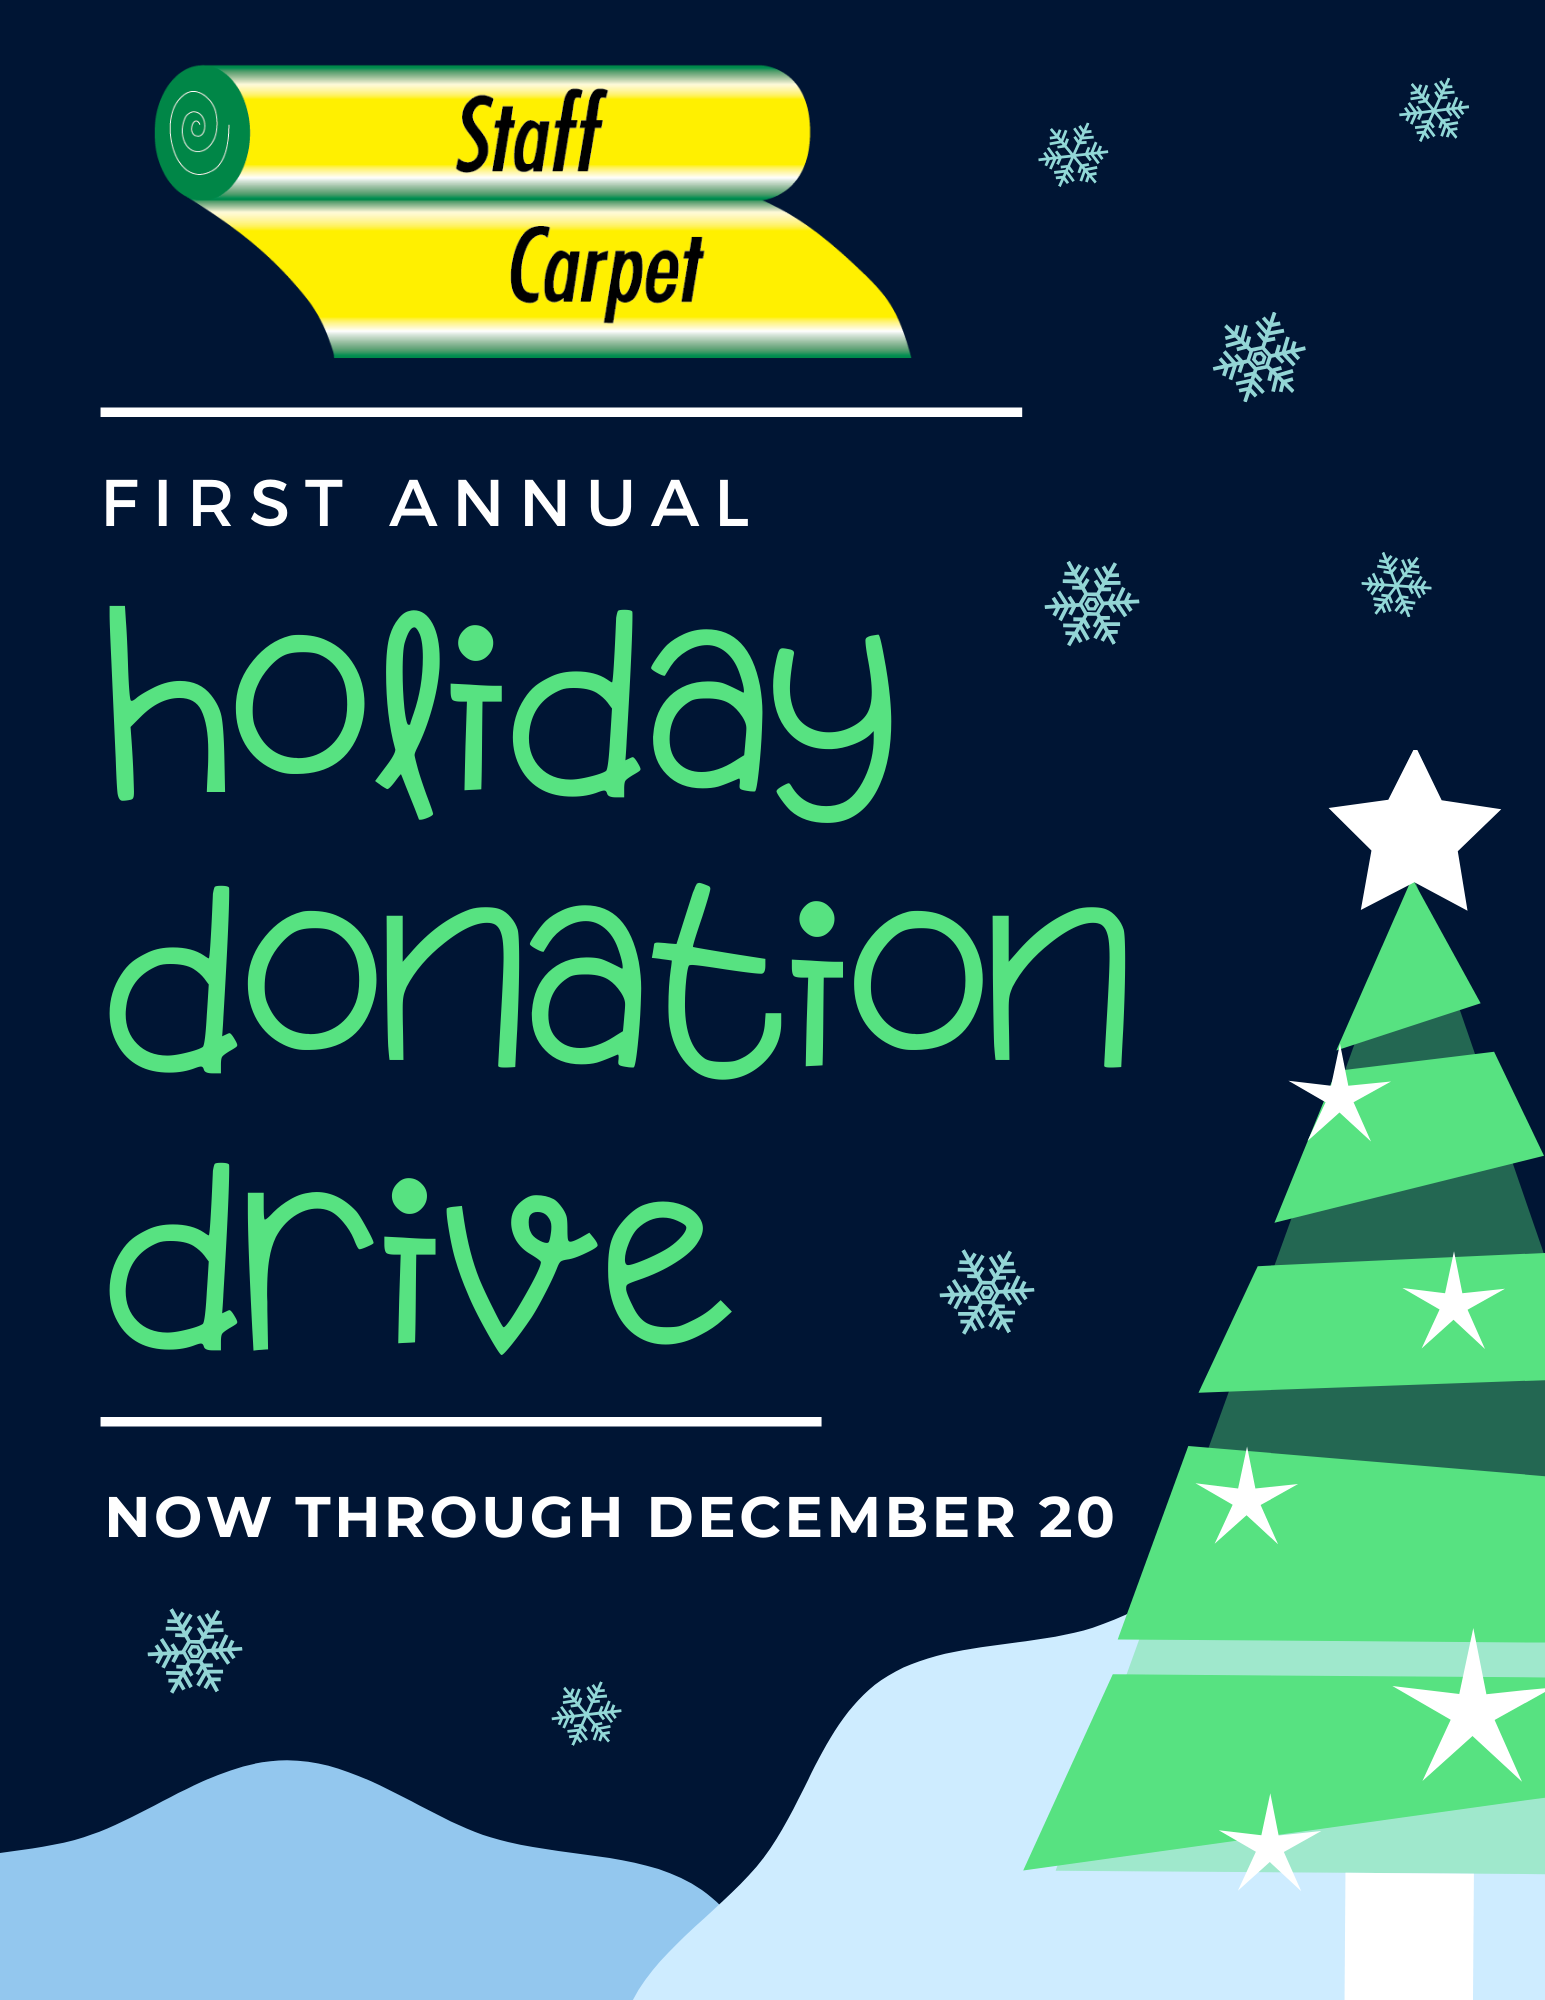 Holiday donation drive banner | Staff Carpet